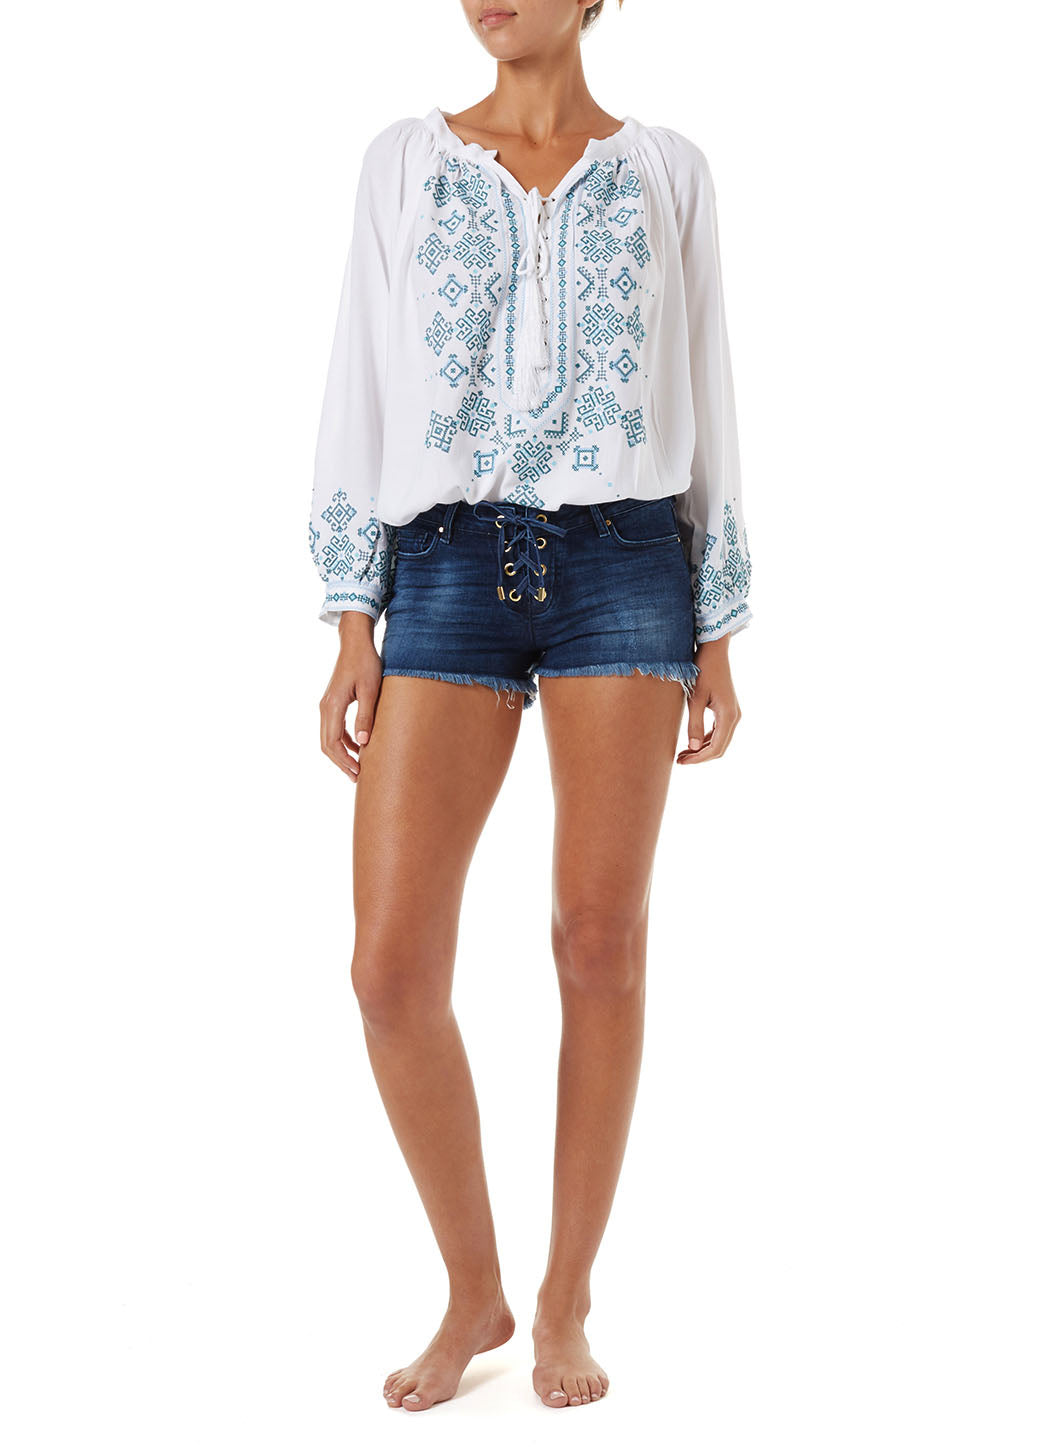 Alexi Denim Lace-Up Shorts - Melissa Odabash Tops & Bottoms